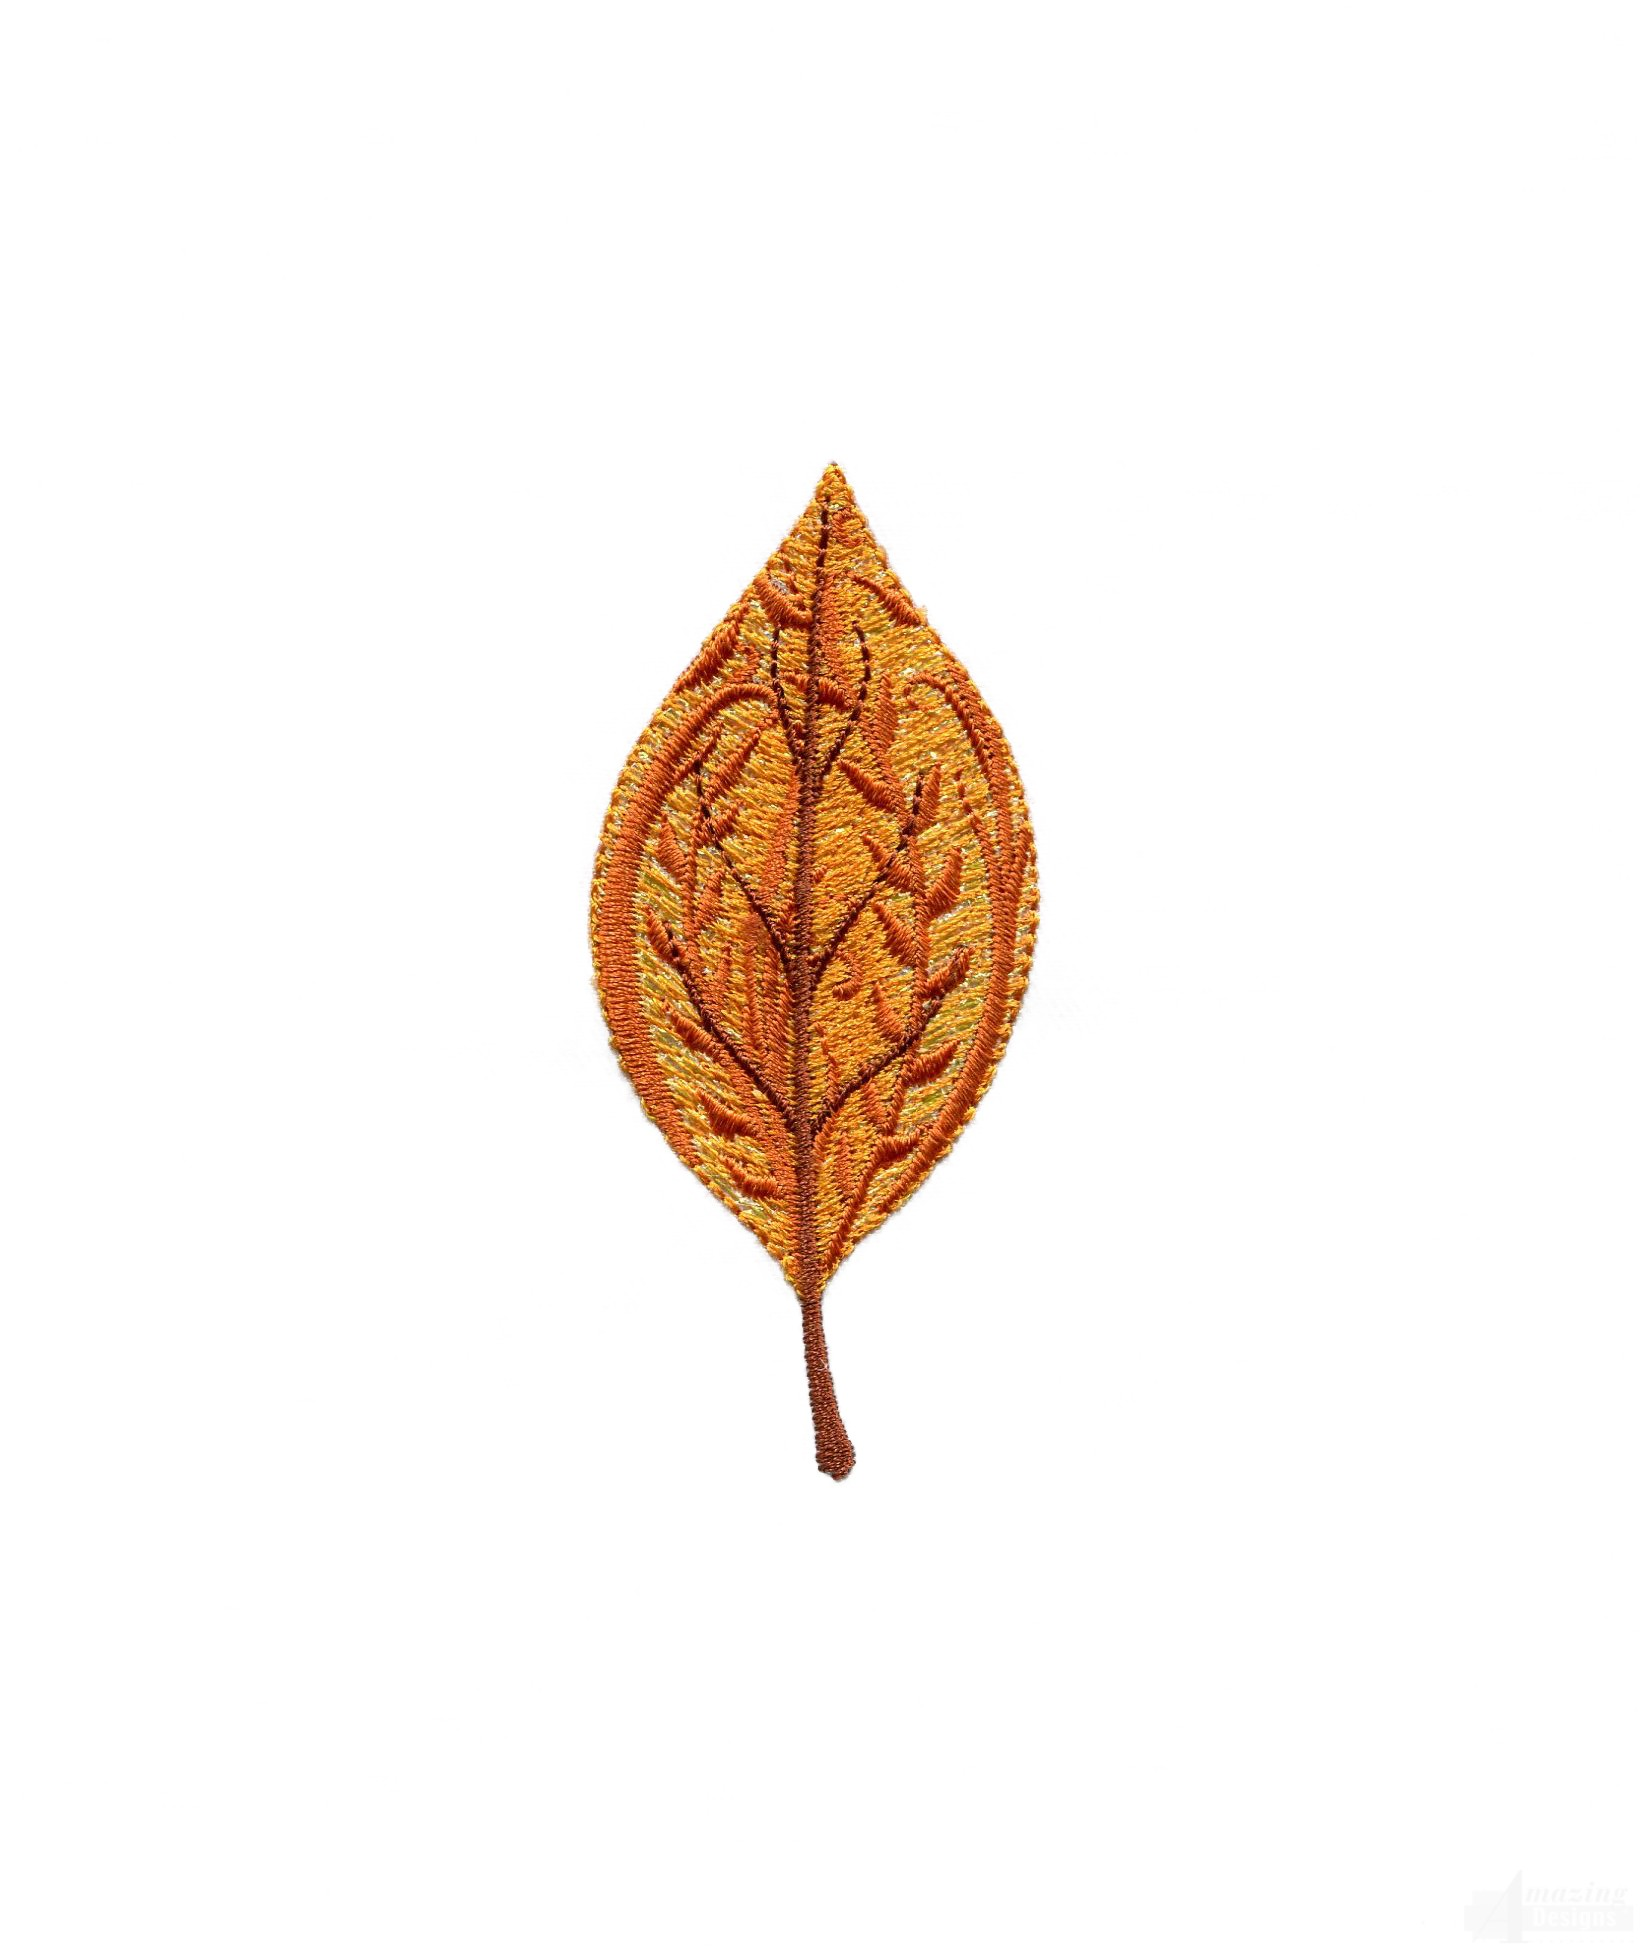 Leaf iridescent autumn embroidery design